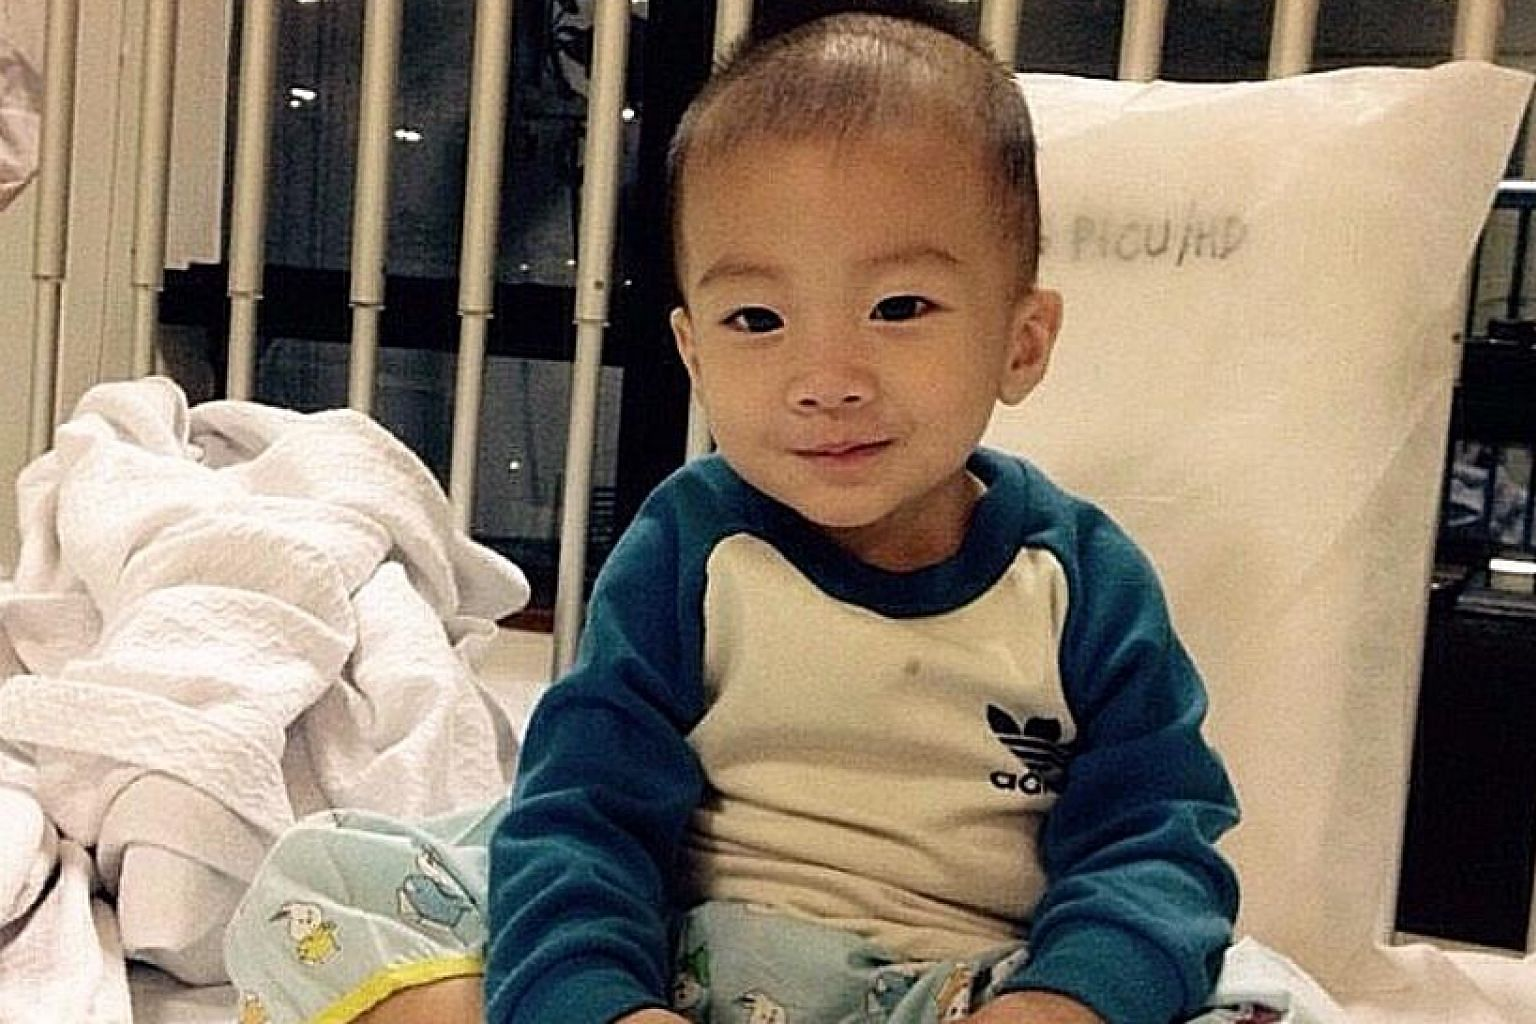 Khang has Hyper IgM syndrome, a rare genetic disease which results in his immune system not working. The only cure is an expensive bone marrow transplant to replace the boy's faulty immune system.